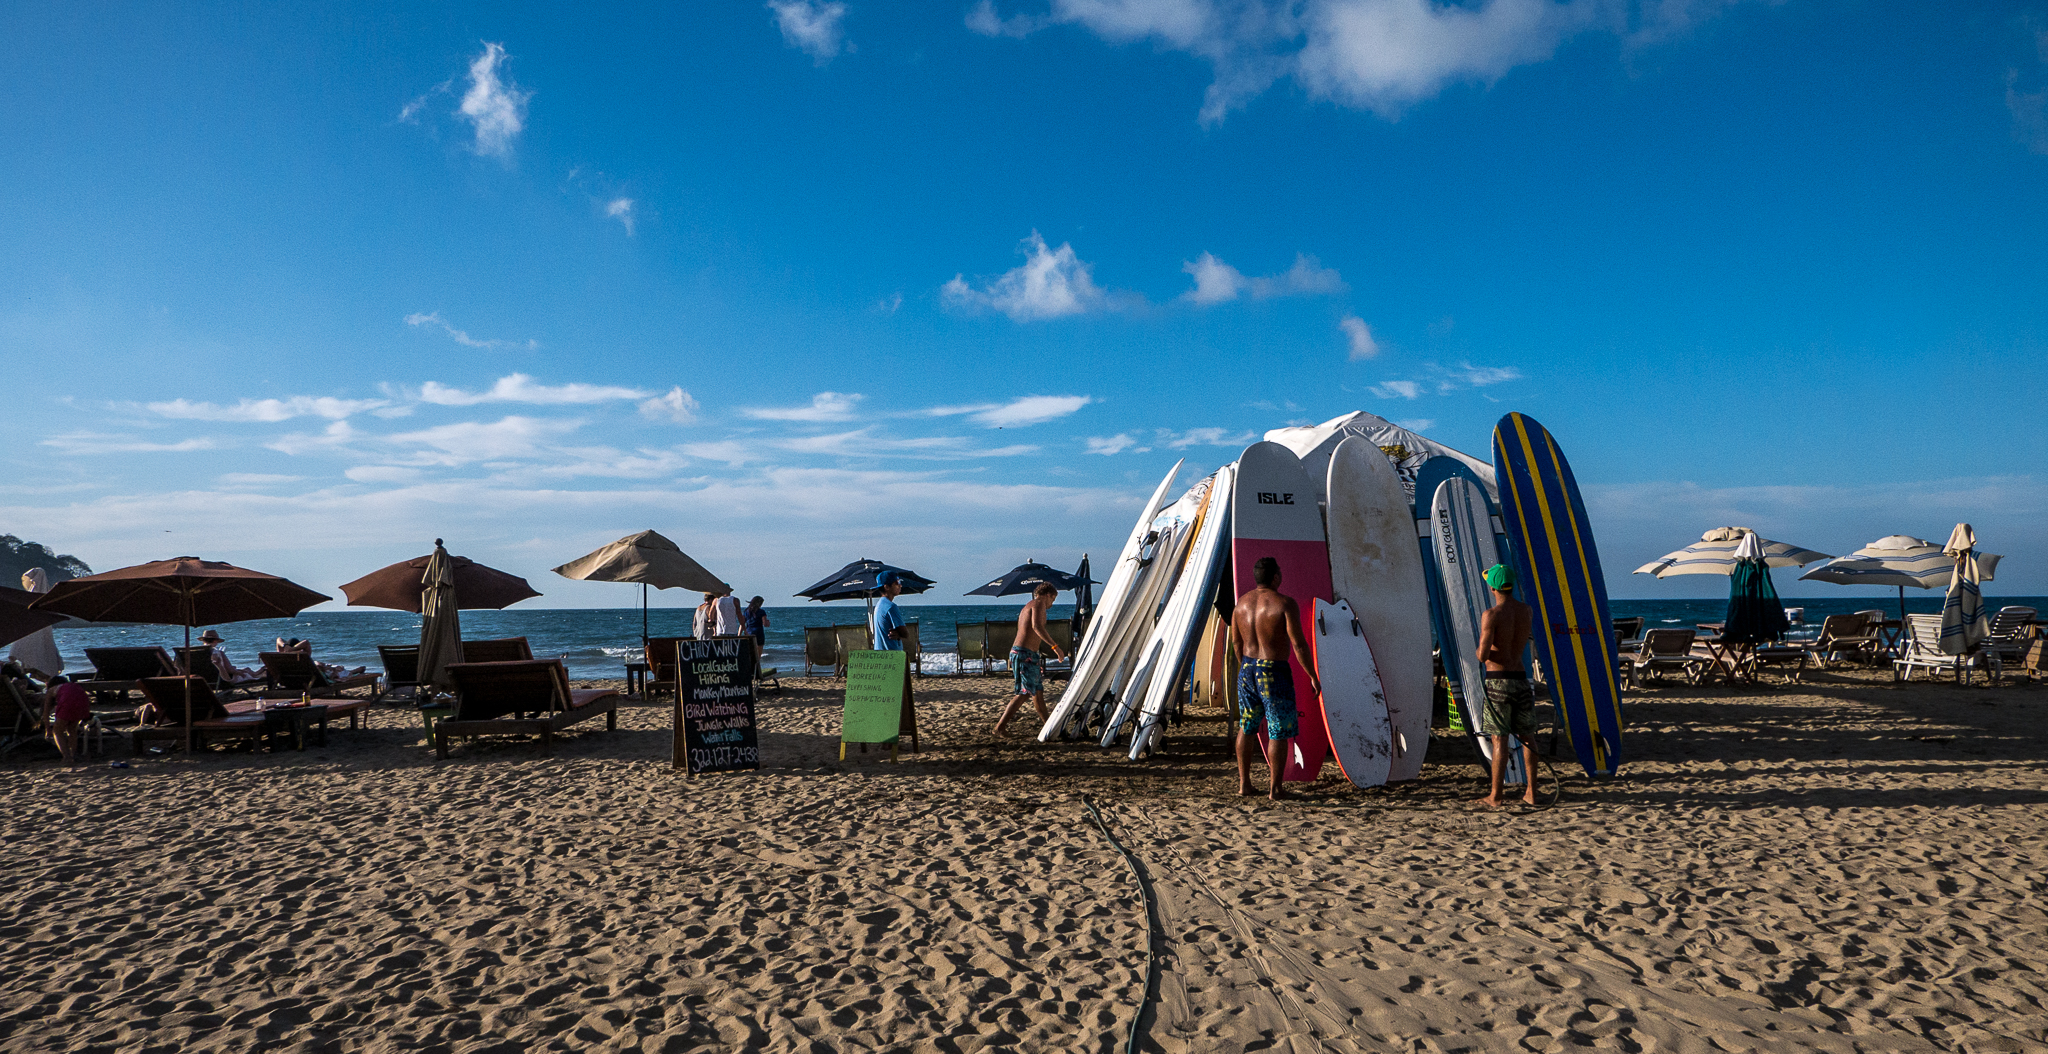 Surfboards for hire on the local beach in Sayulita, Mexico